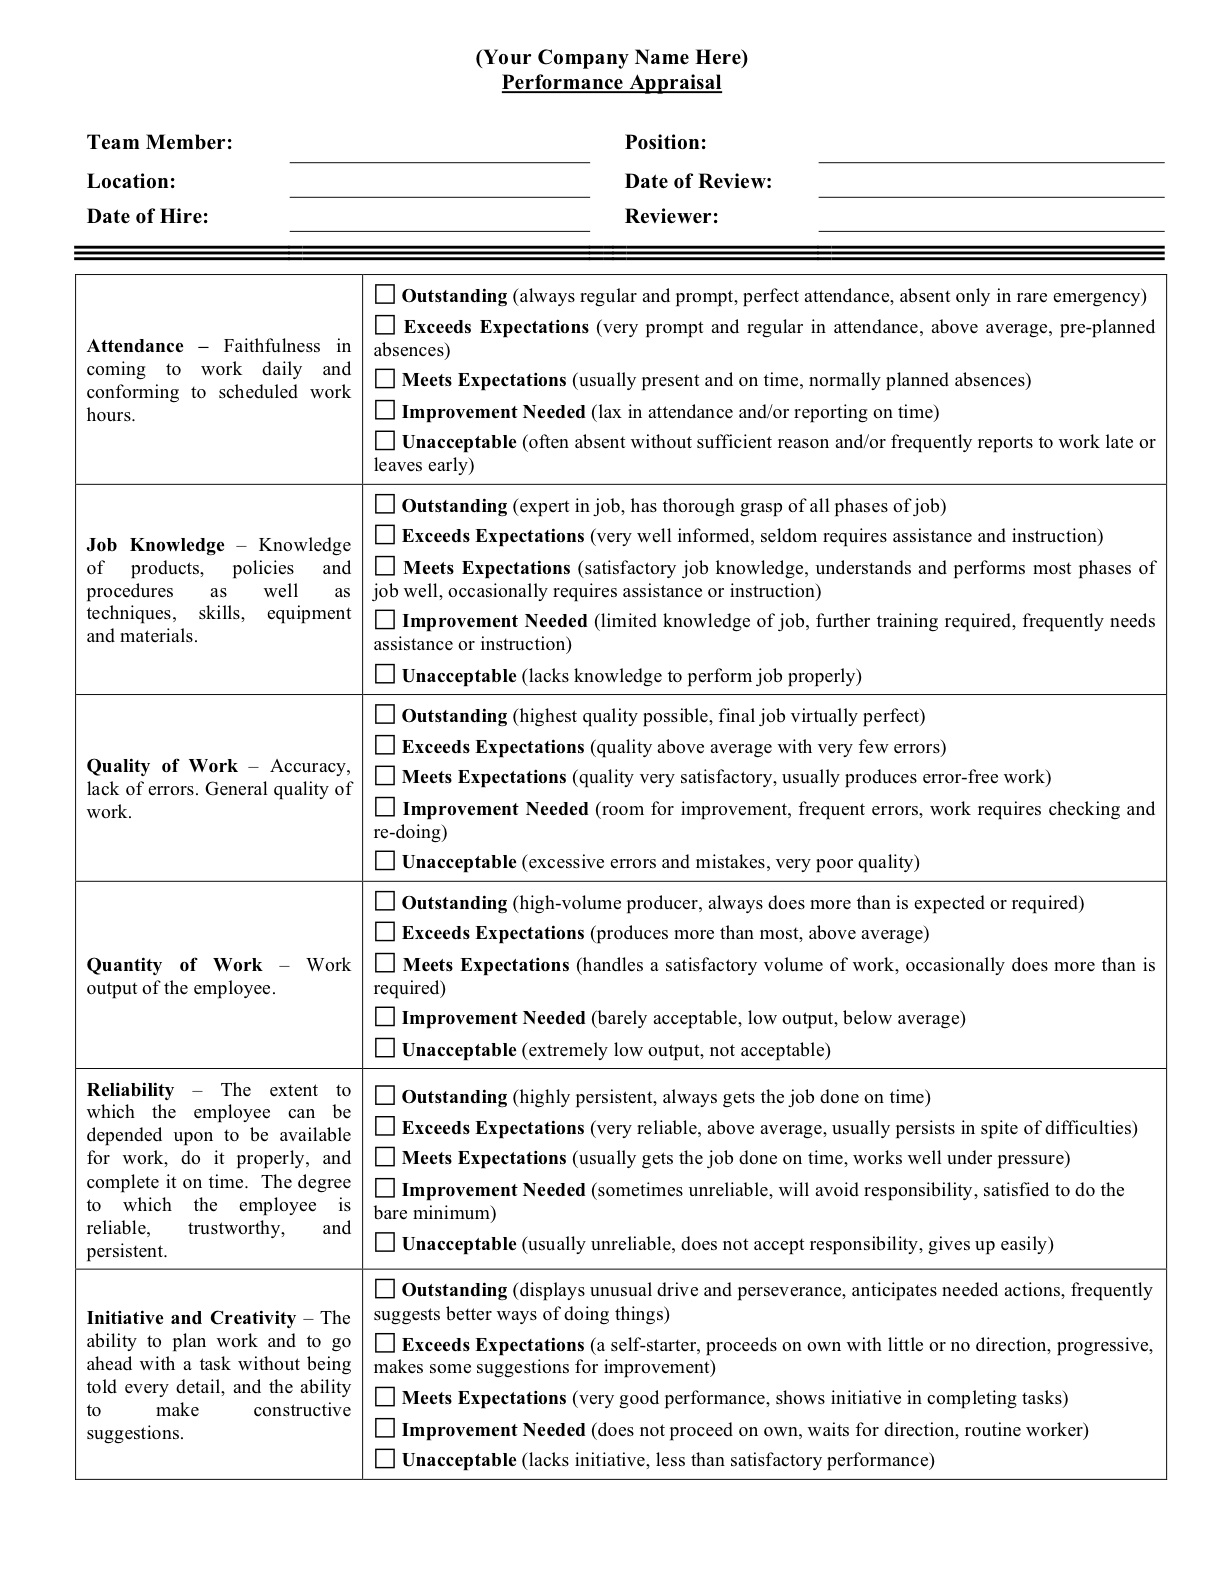 performance evaluation form personal appraisal form resume performance evaluation form personal appraisal form employee evaluation forms and performance appraisal form home images performance